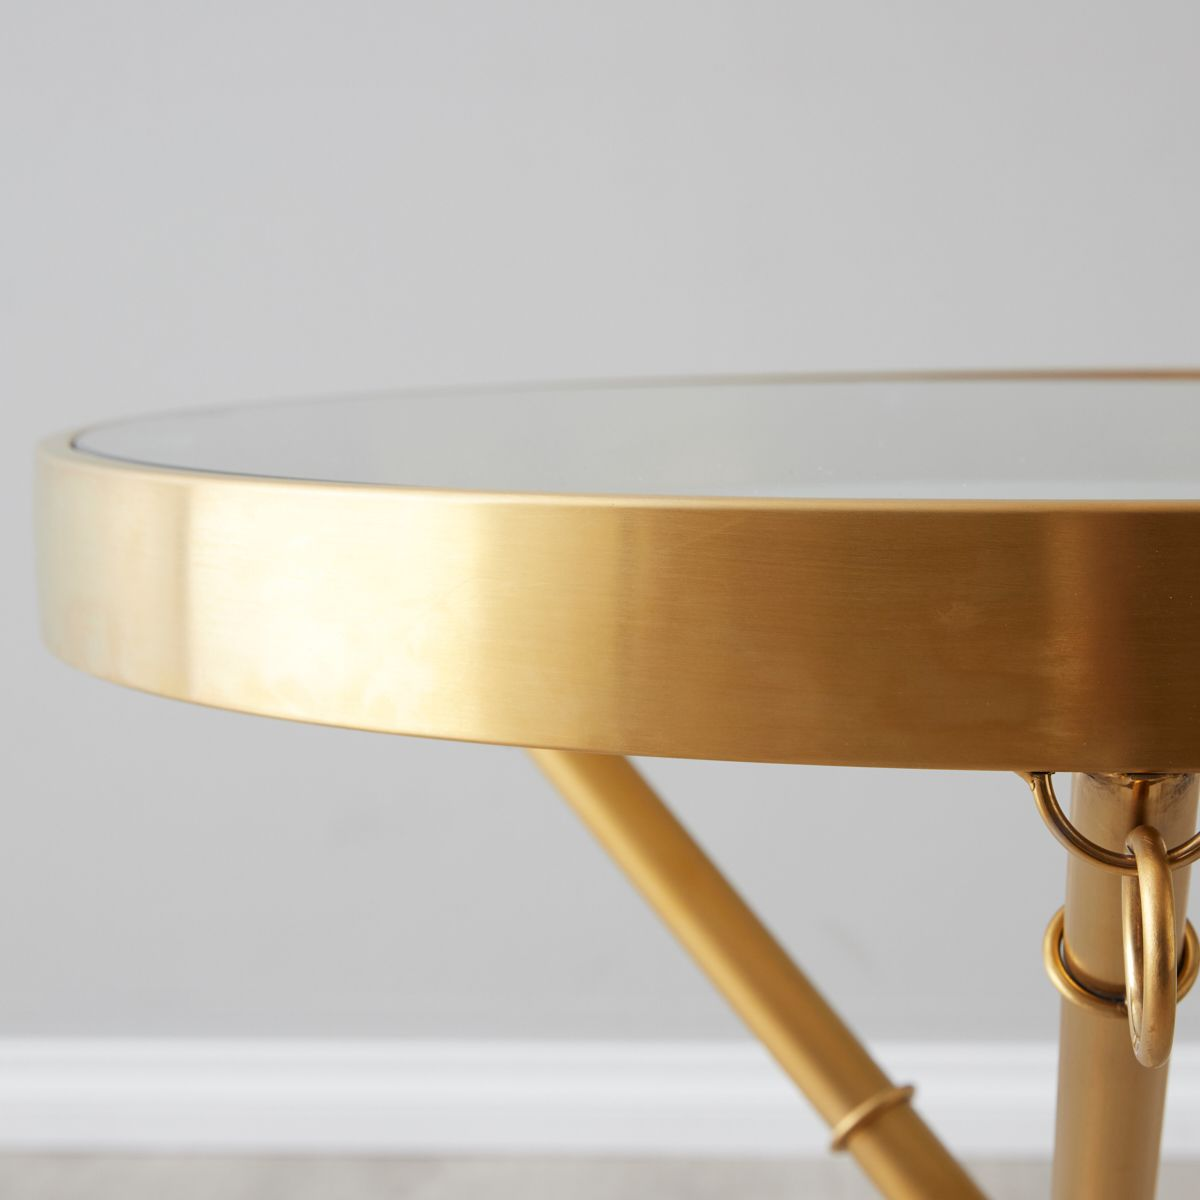 Sandringham gold side table